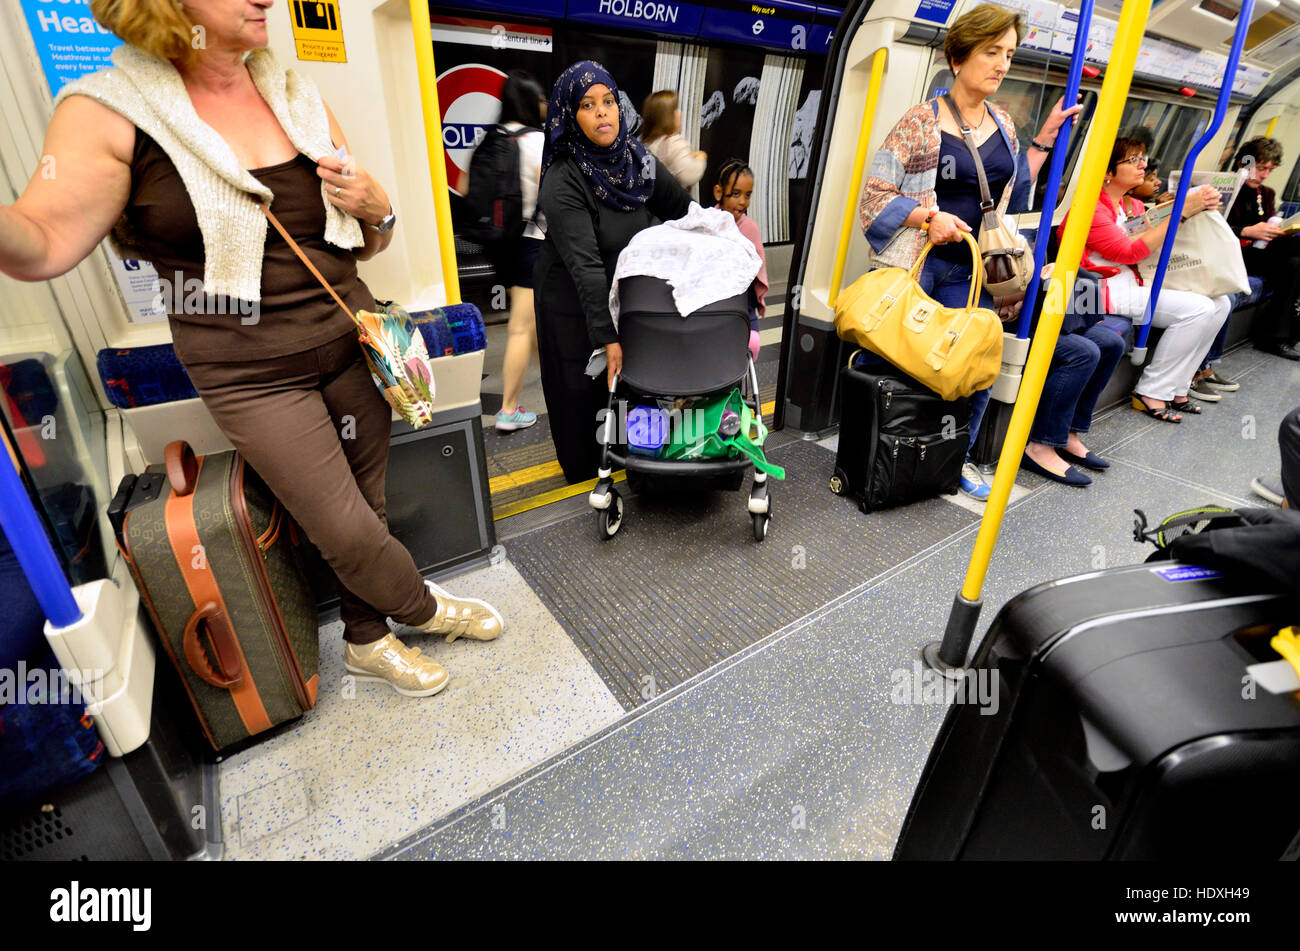 London, England, UK. Muslim woman getting on a tube train with a pram and a child Stock Photo